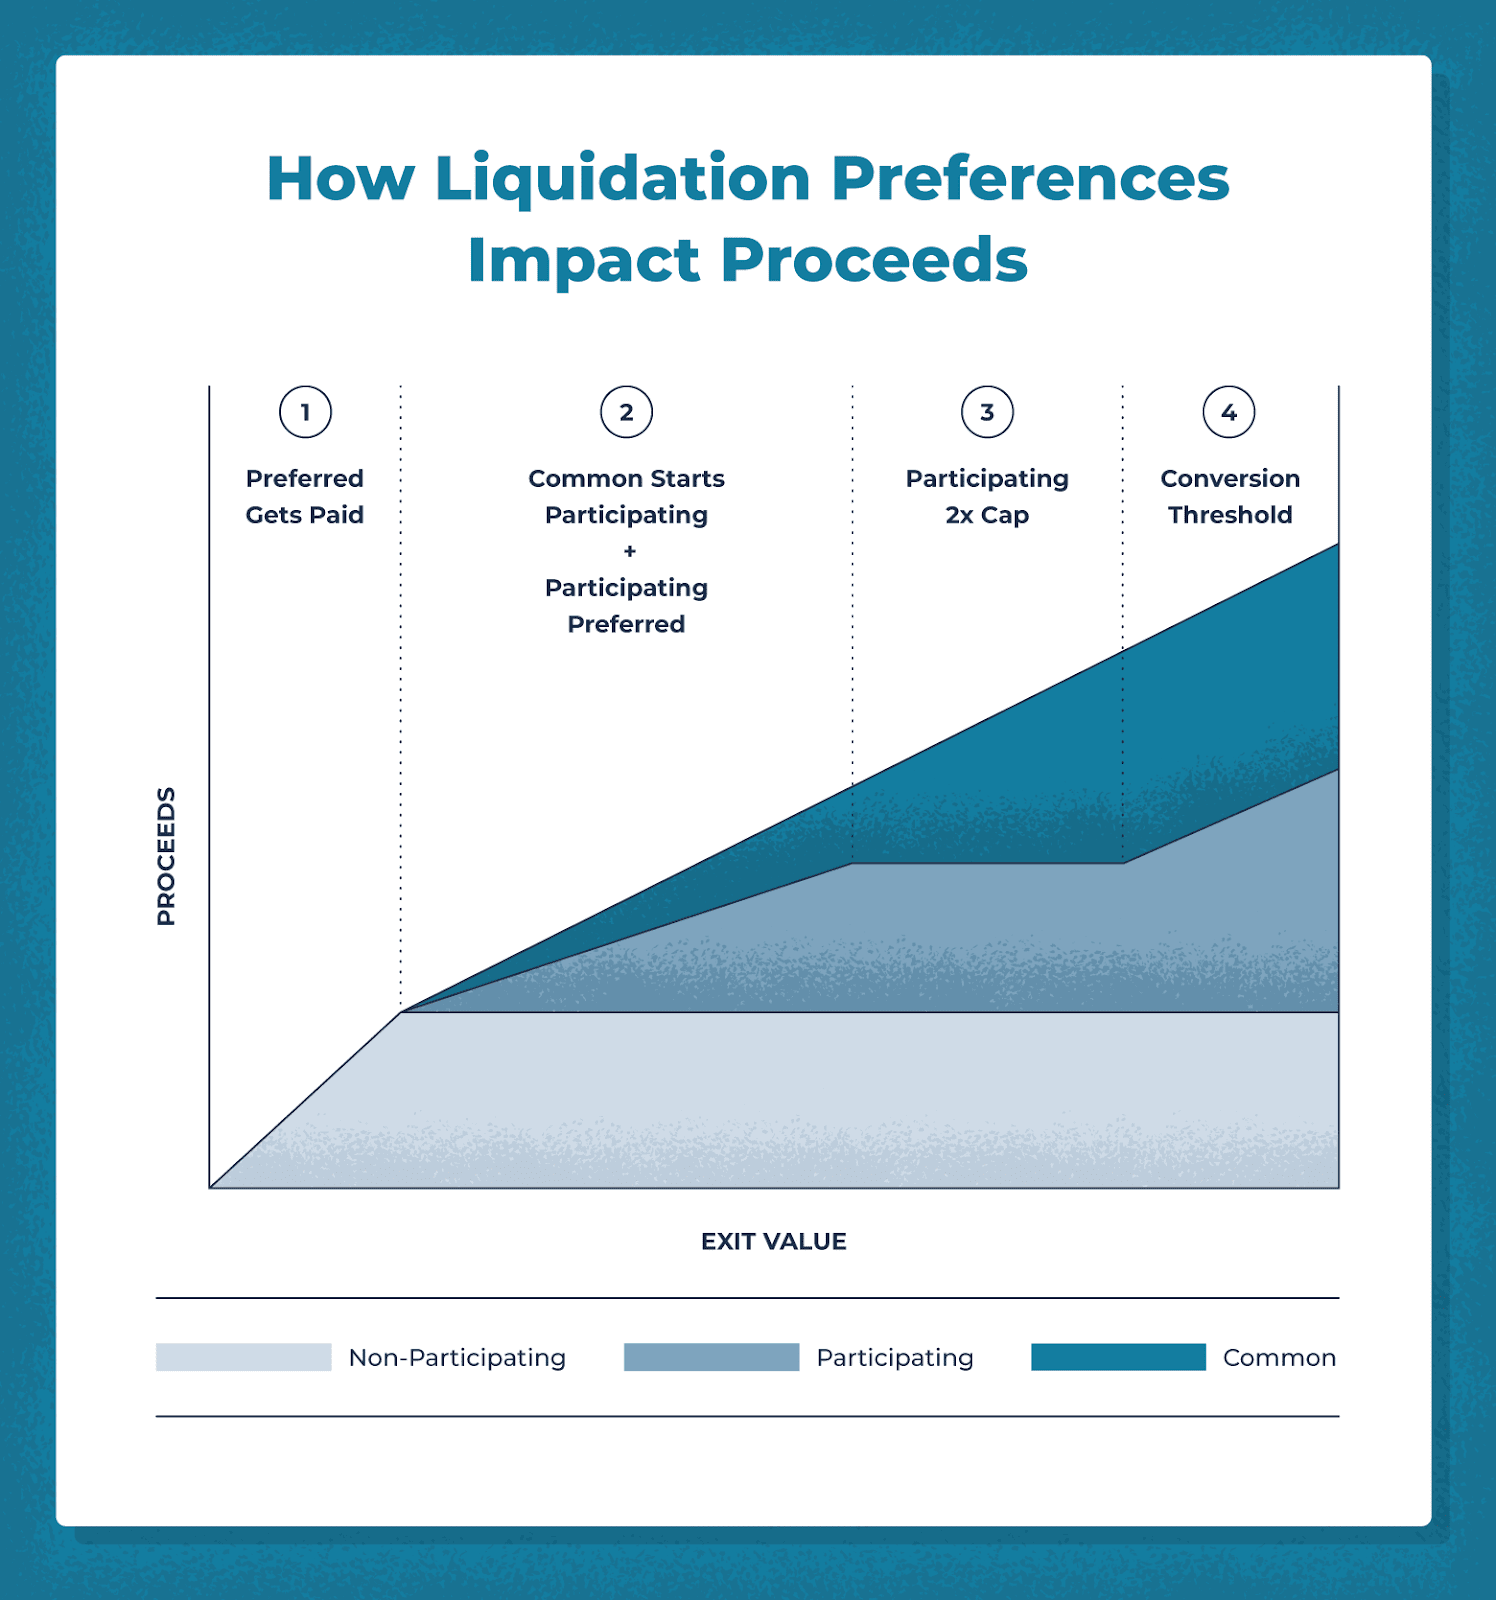 how liquidation preference impacts proceeds